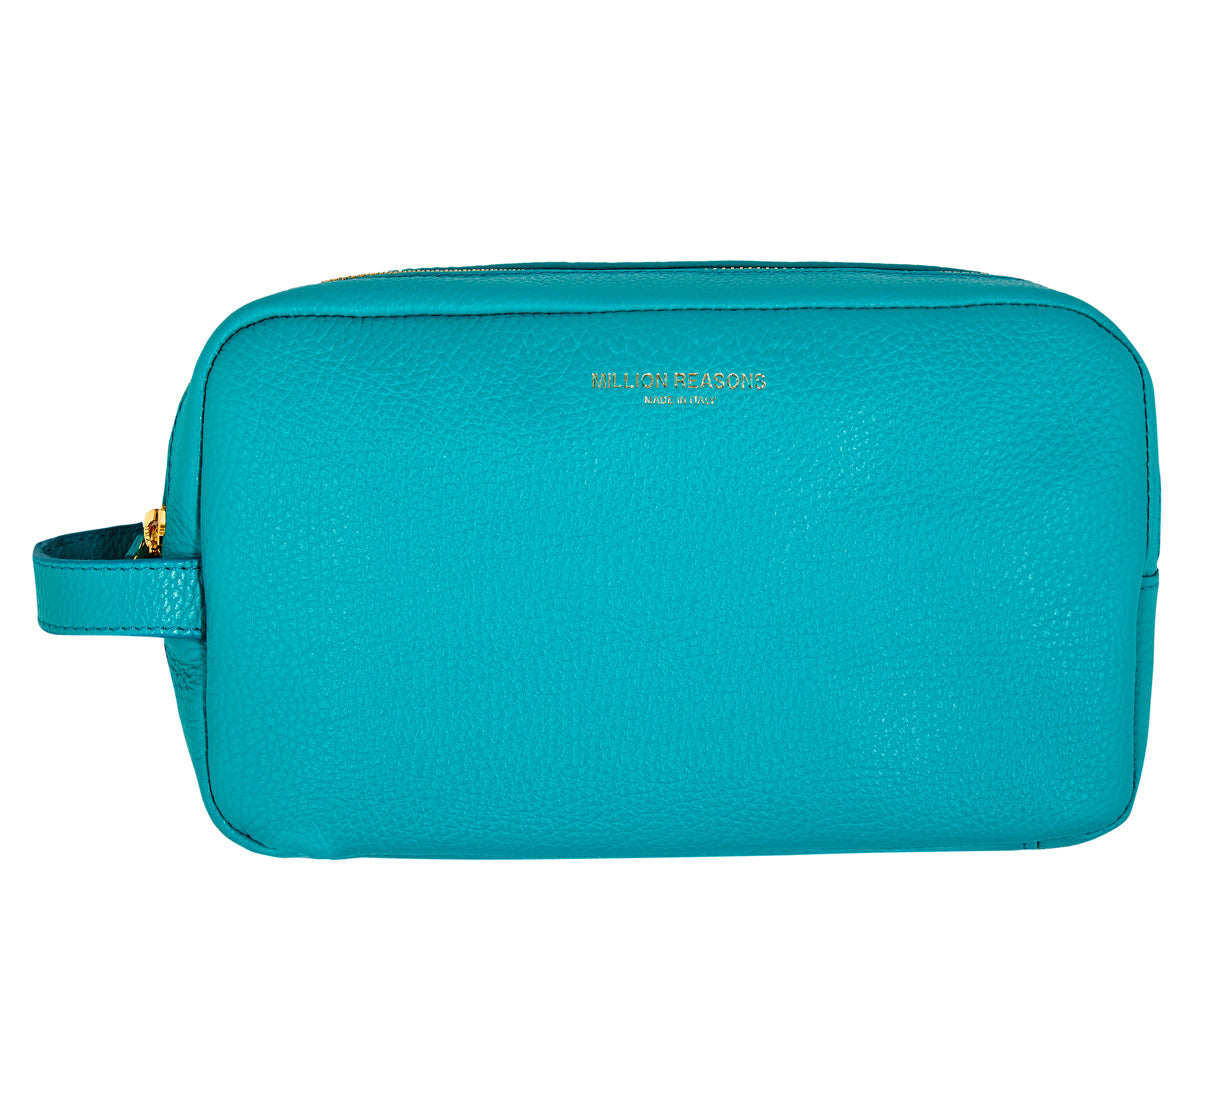 Leather Wash Bag-Turquoise